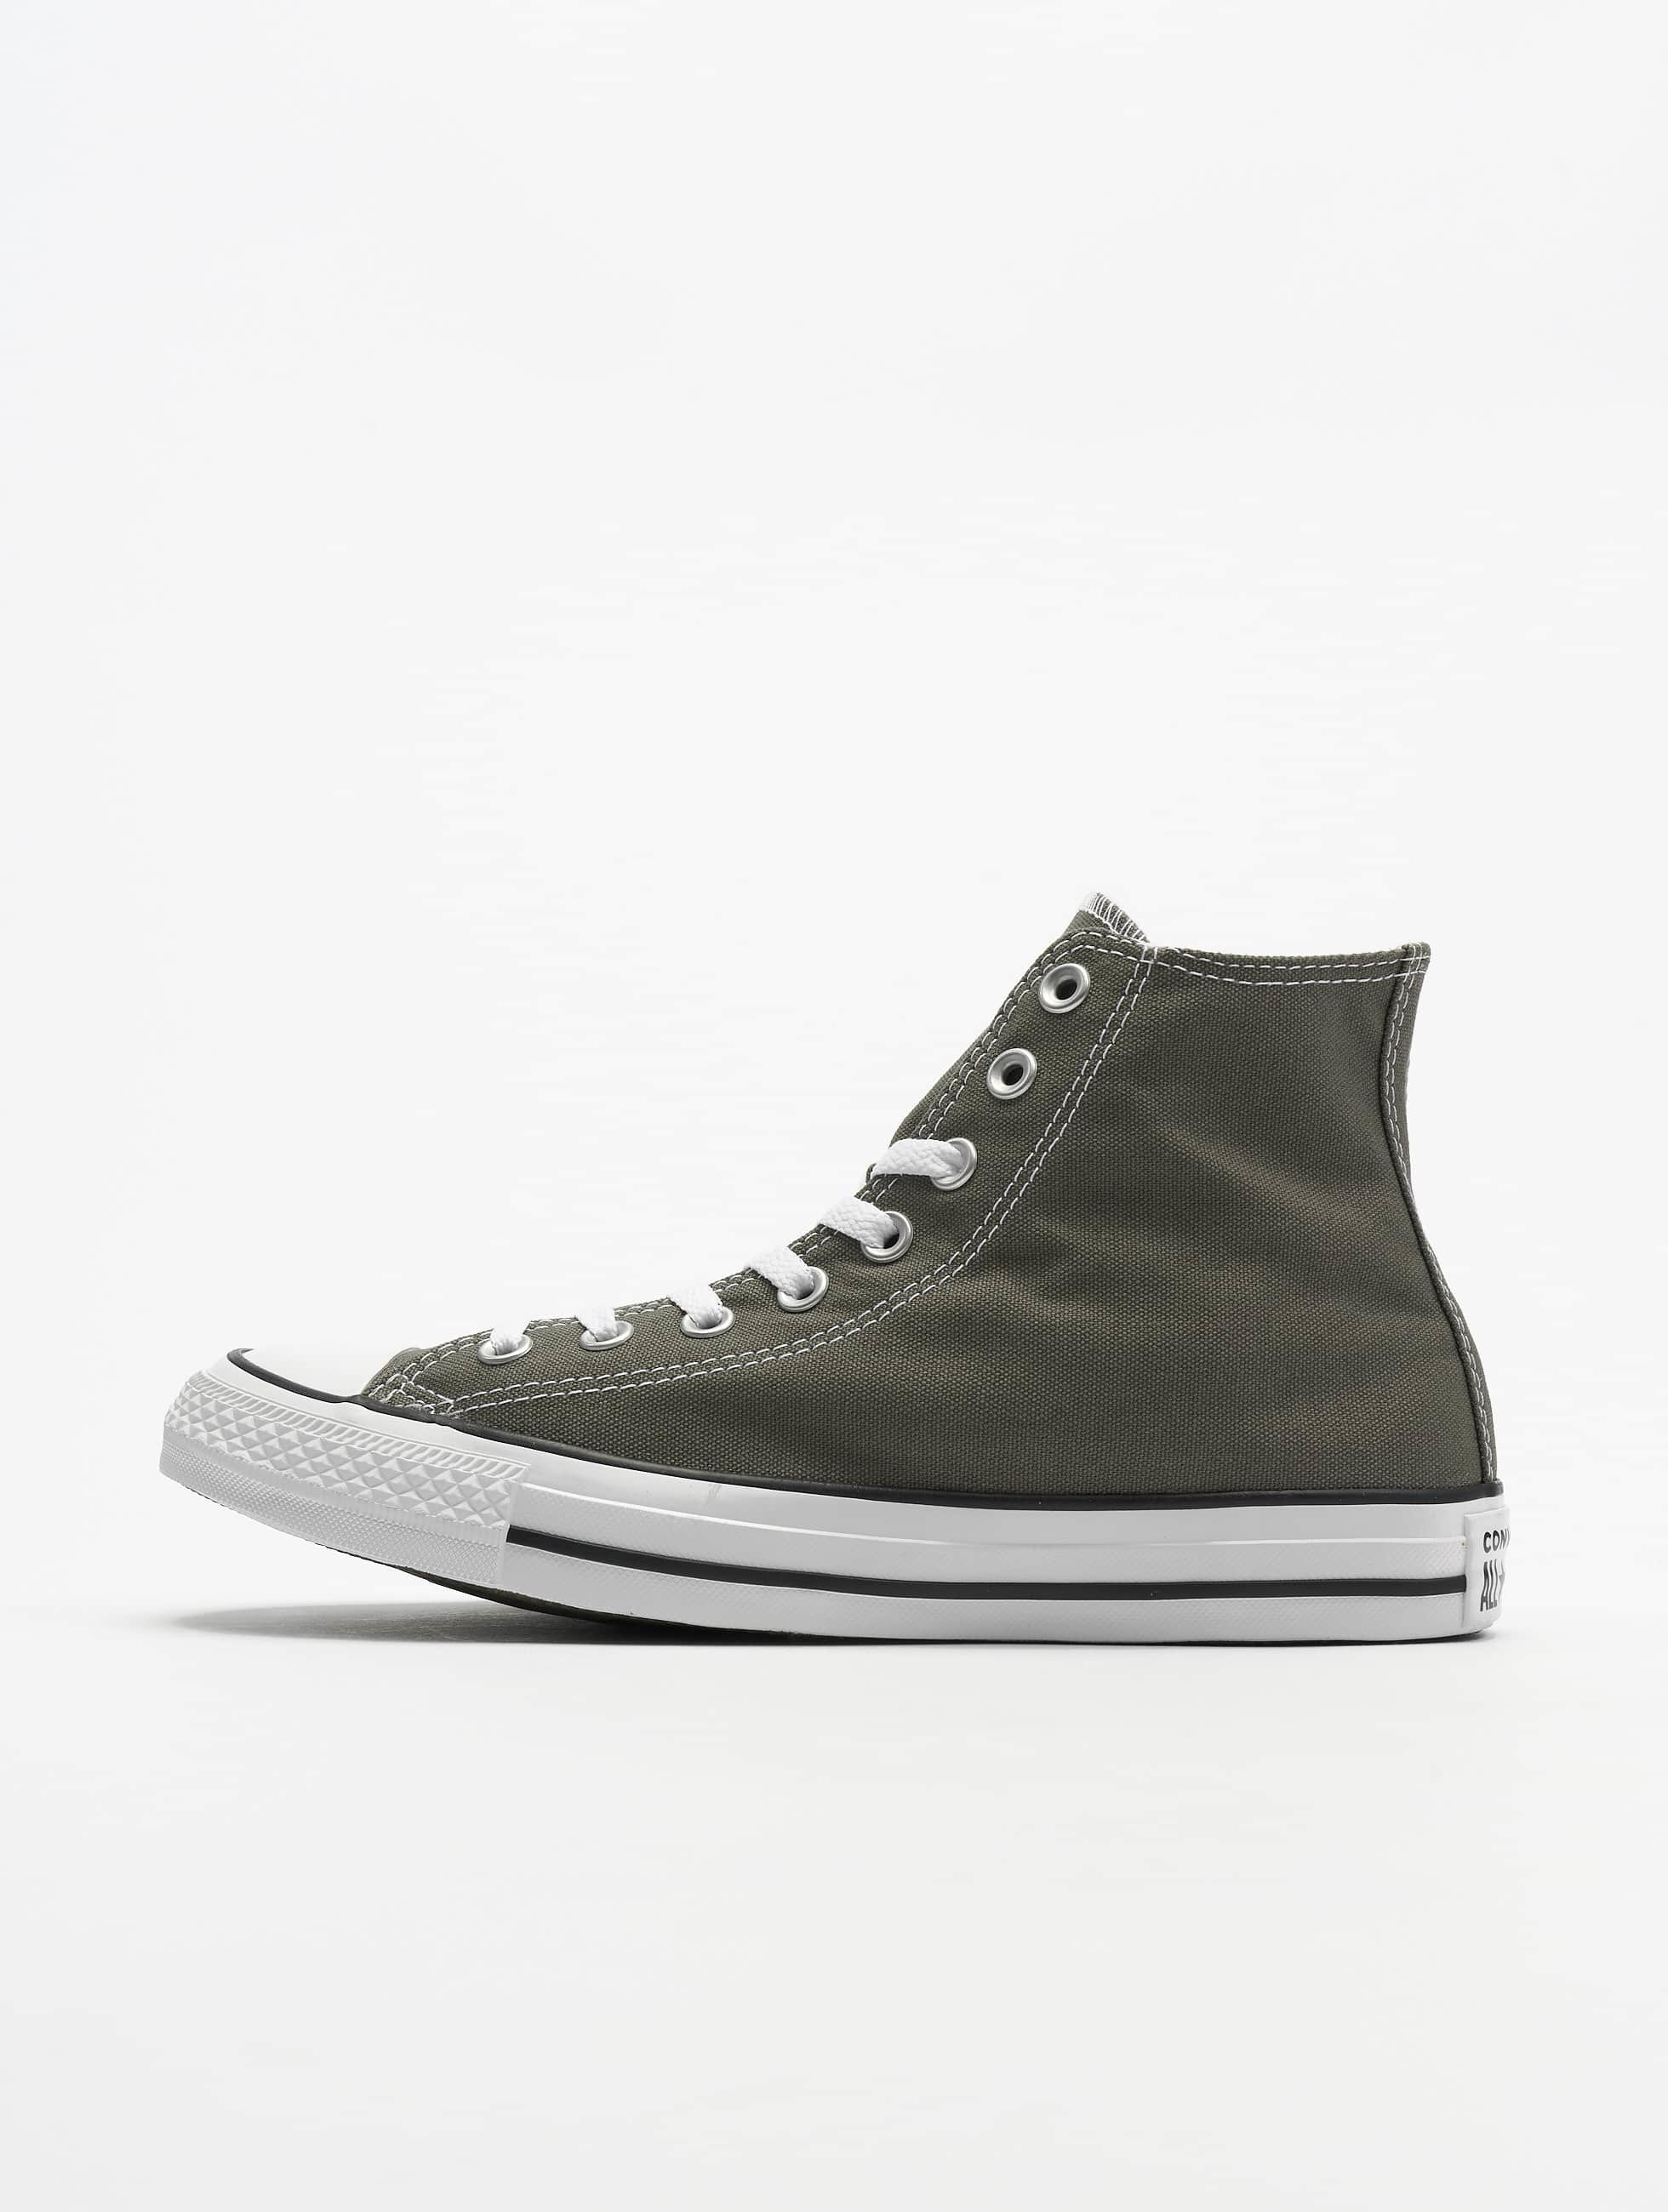 Converse Chuck Taylor All Star Seasonal High Sneakers Charco